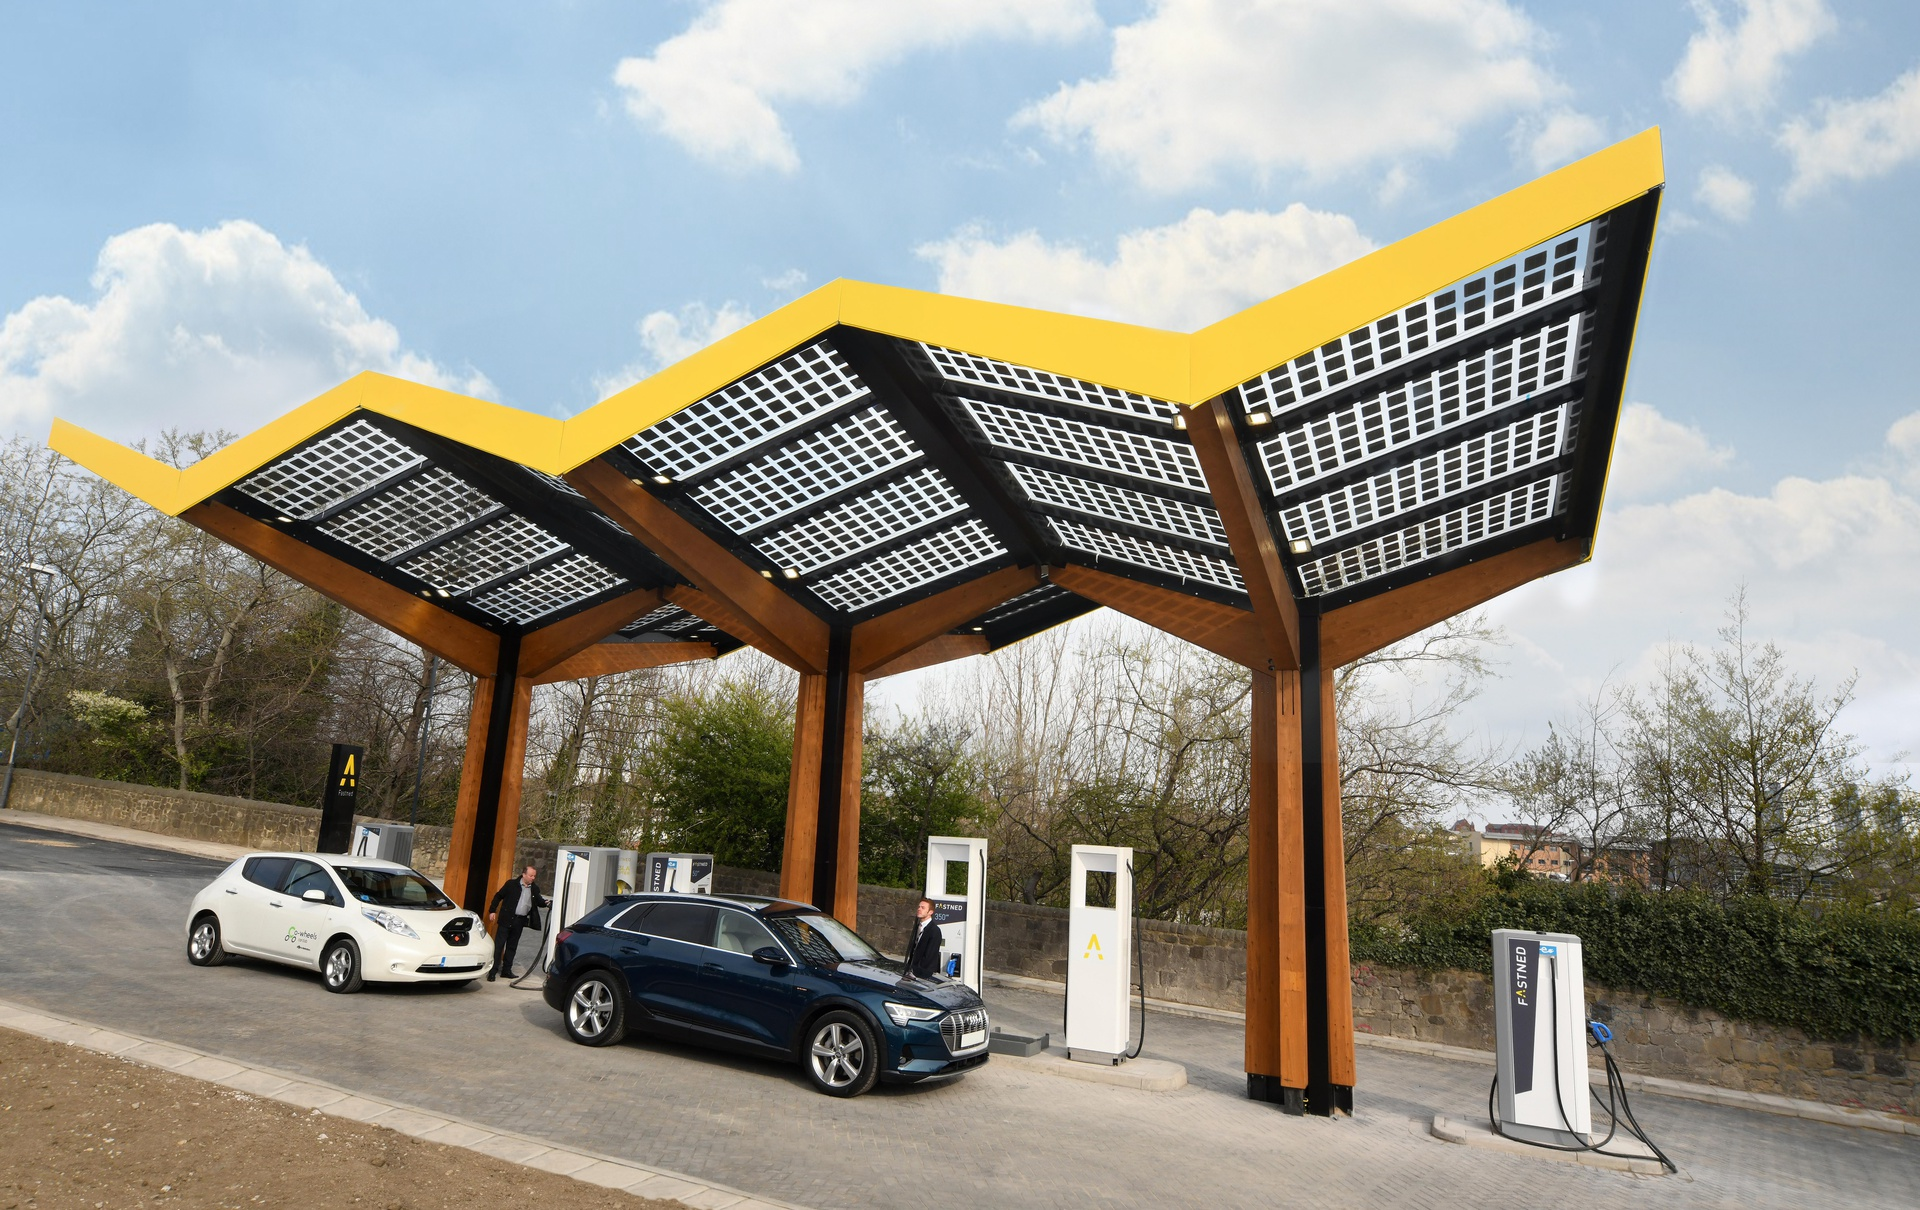 Fastned_first fast charging station_United Kingdom_Sunderland.jpg